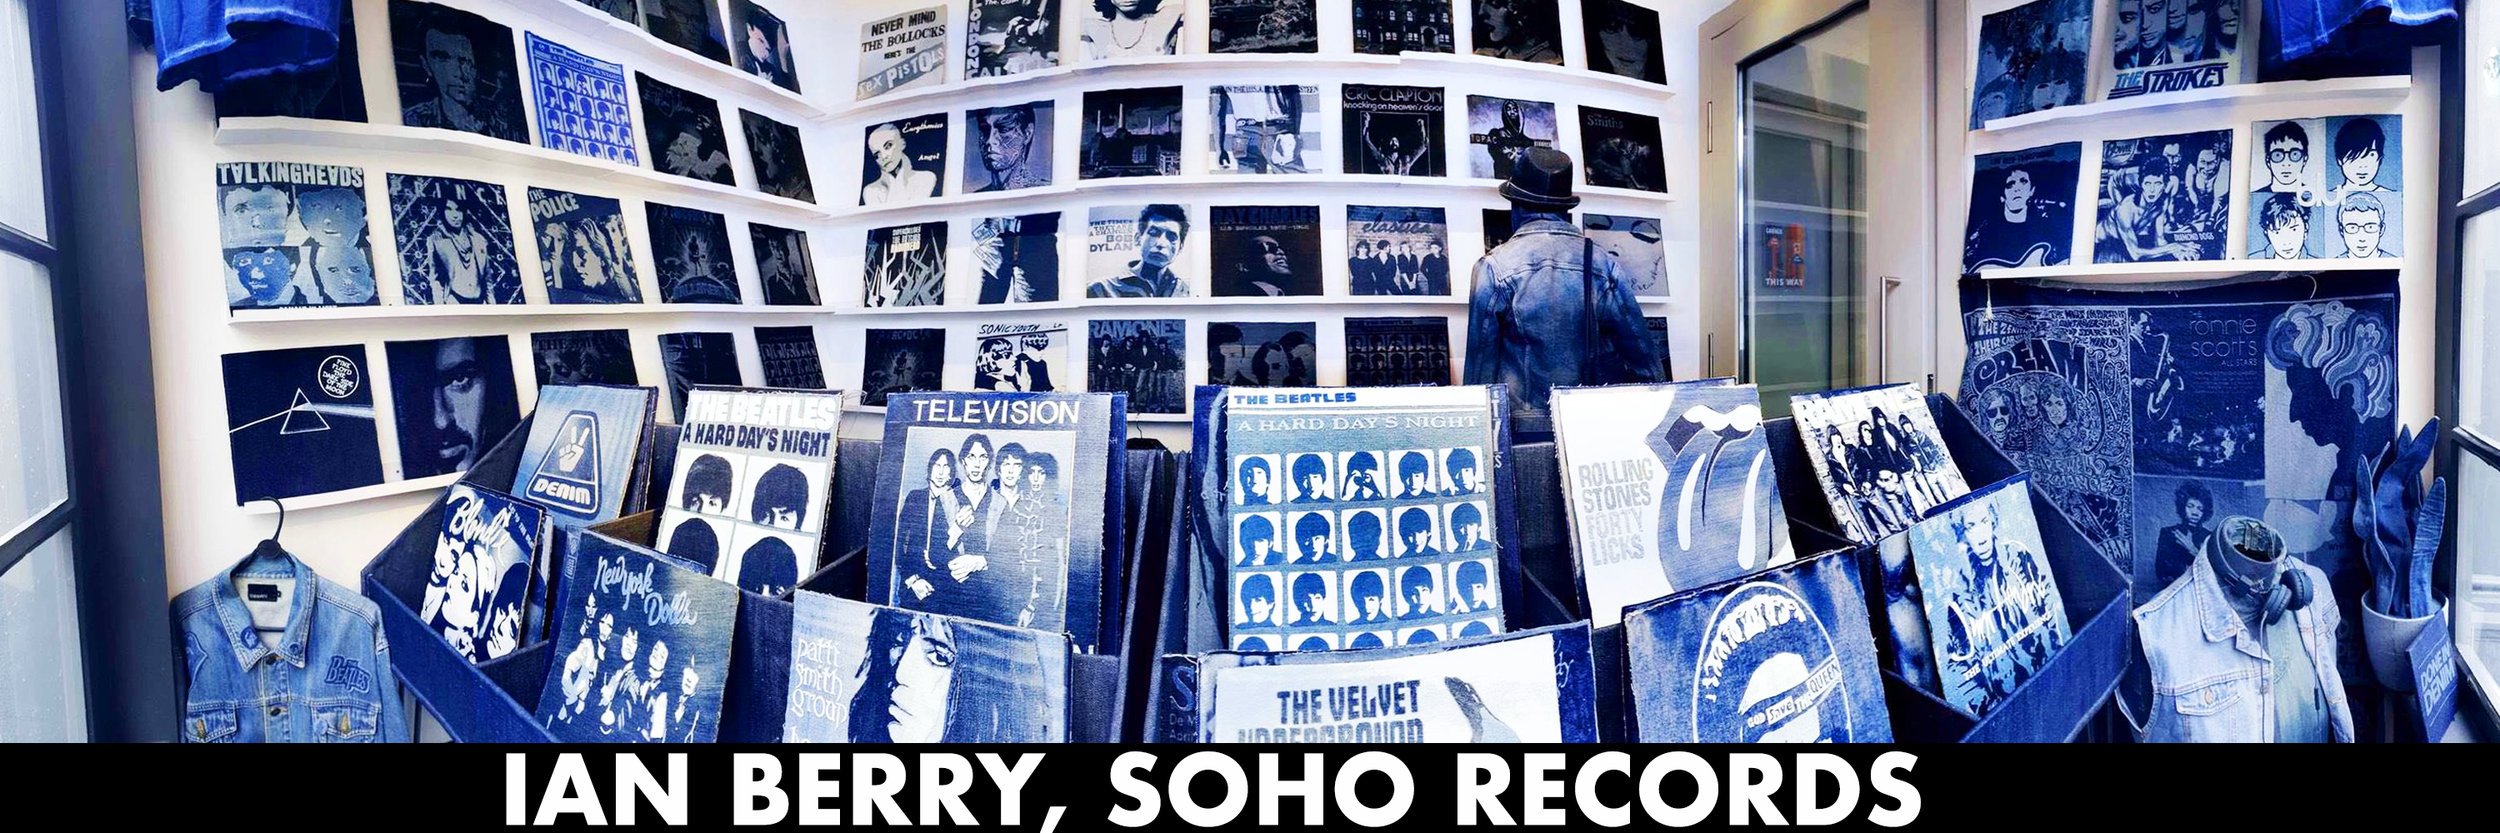 Ian Berry 'Soho Records' Exhibition @ The Smallest Gallery in Soho - http://www.ianberry.org/soho-records/